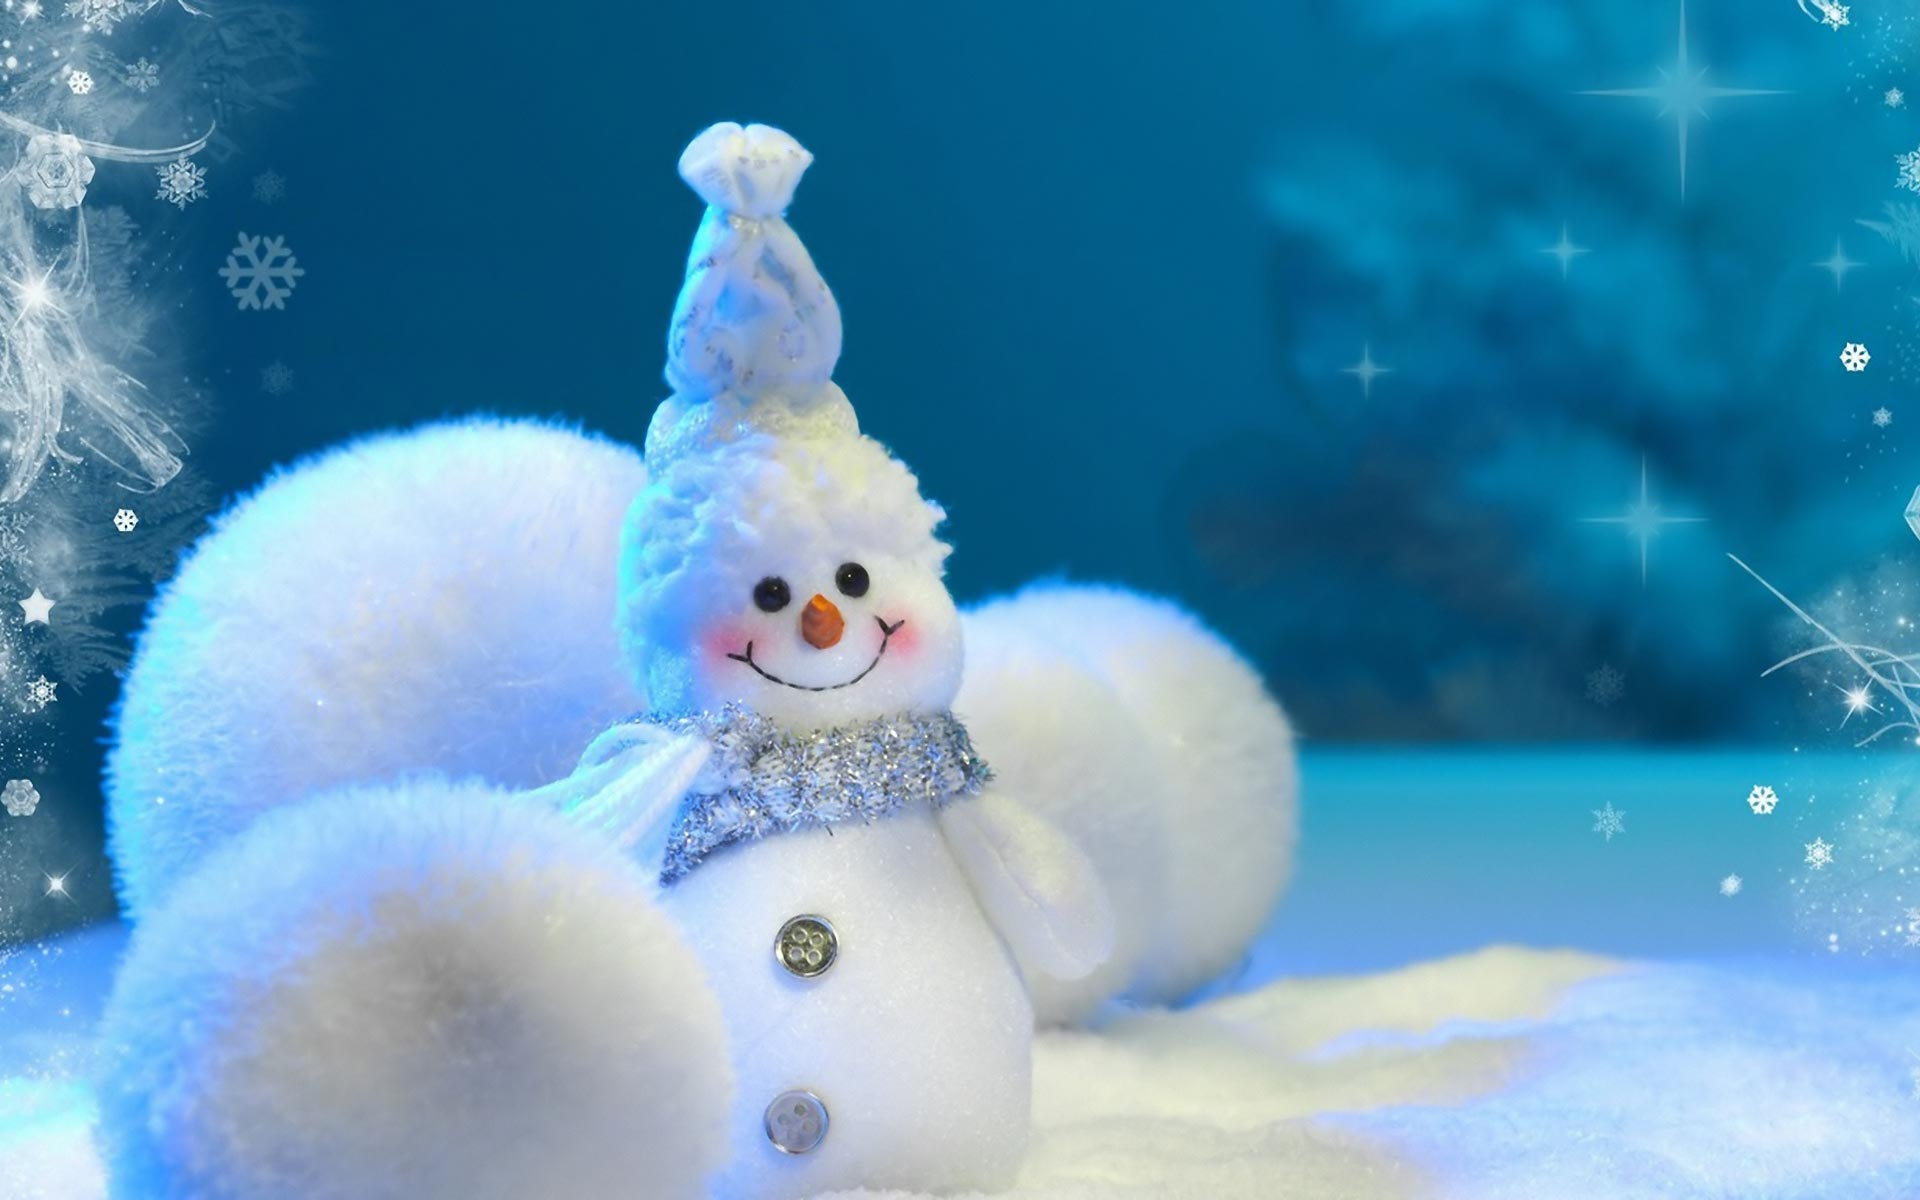 Desktop backgrounds · Backgrounds · Holiday Cute little snowman New Year picture